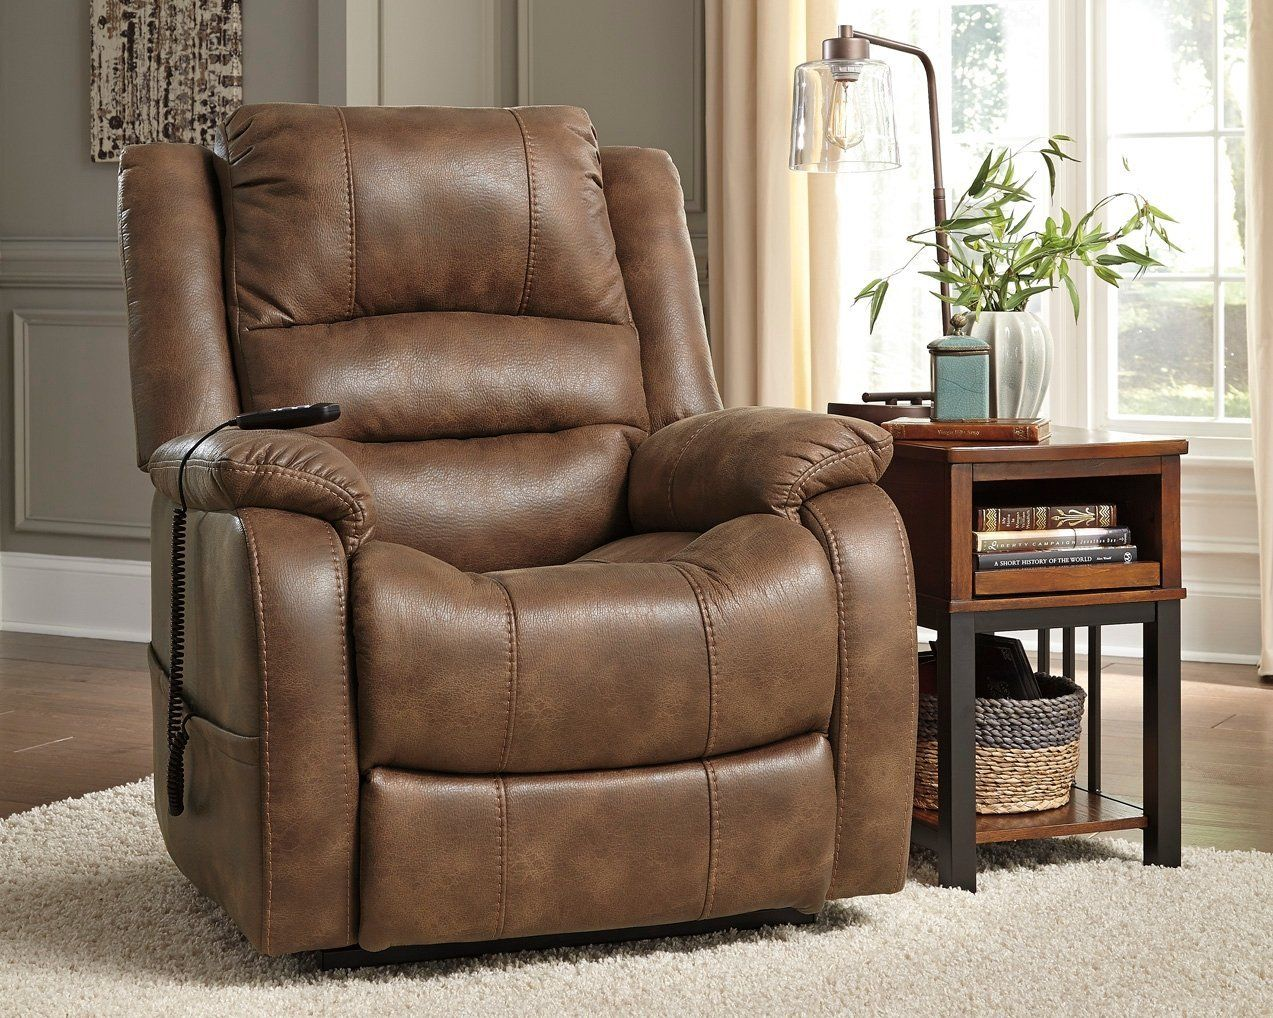 Top 10 Most Comfortable Sofas Reviews - Top Best Pro Reviews | Top ...